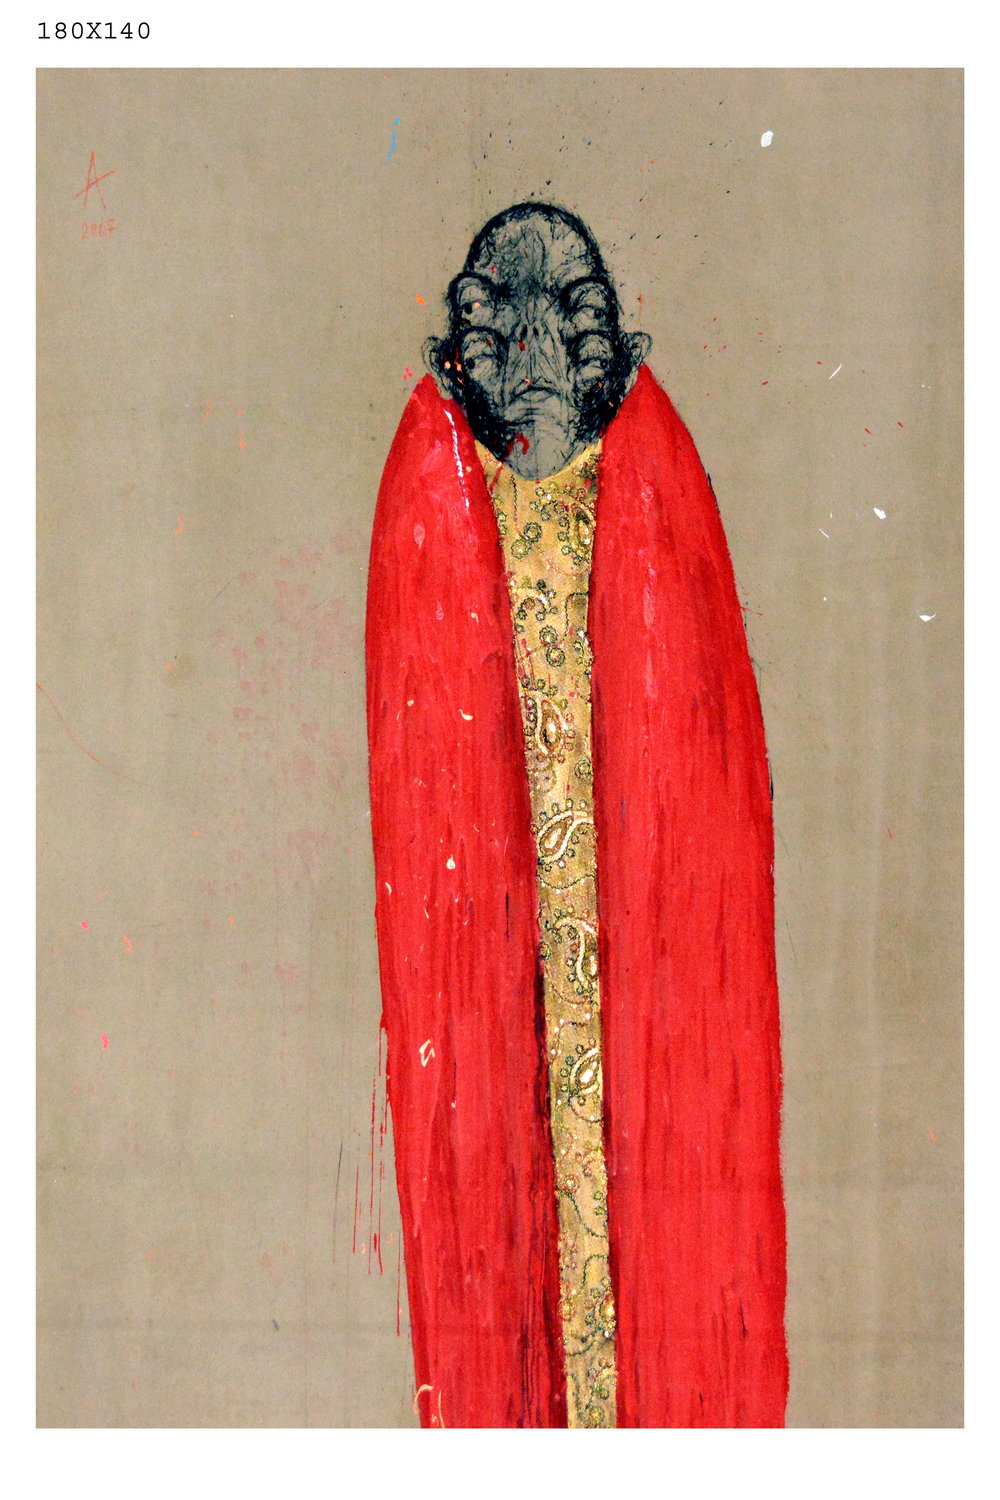 Lot 3: Sabhan Adam - الفنان سبهان آدم (Syria) 1973 -, Red Angel, 2007, Mixed Media On Canvas, 2007, 180x140cm Est: $4,000 - $6,000